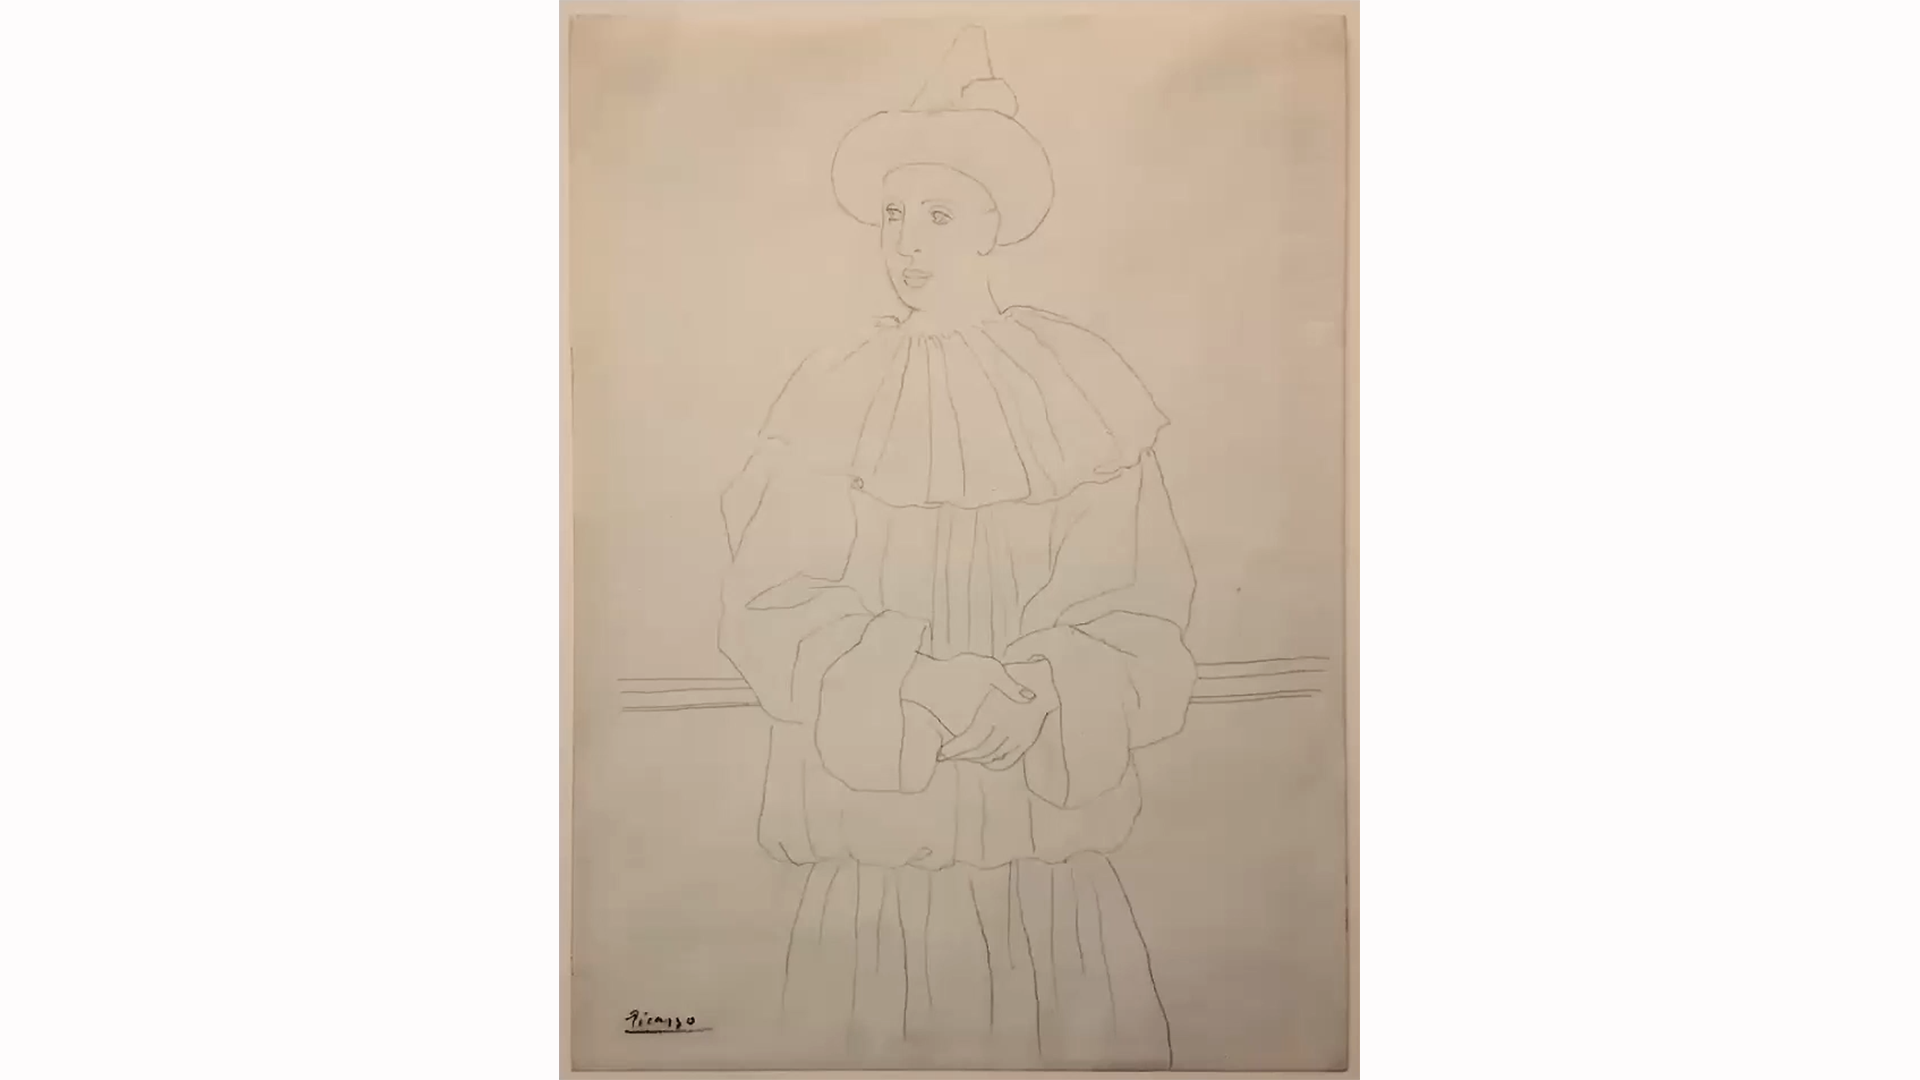 This drawing depicts a male figure with a pointed hat and an oversized suit with a large circular collar. His hands are folded, and he is leaning backward.  calmly folding his hands and leaning backward. He looks toward the left of the picture.